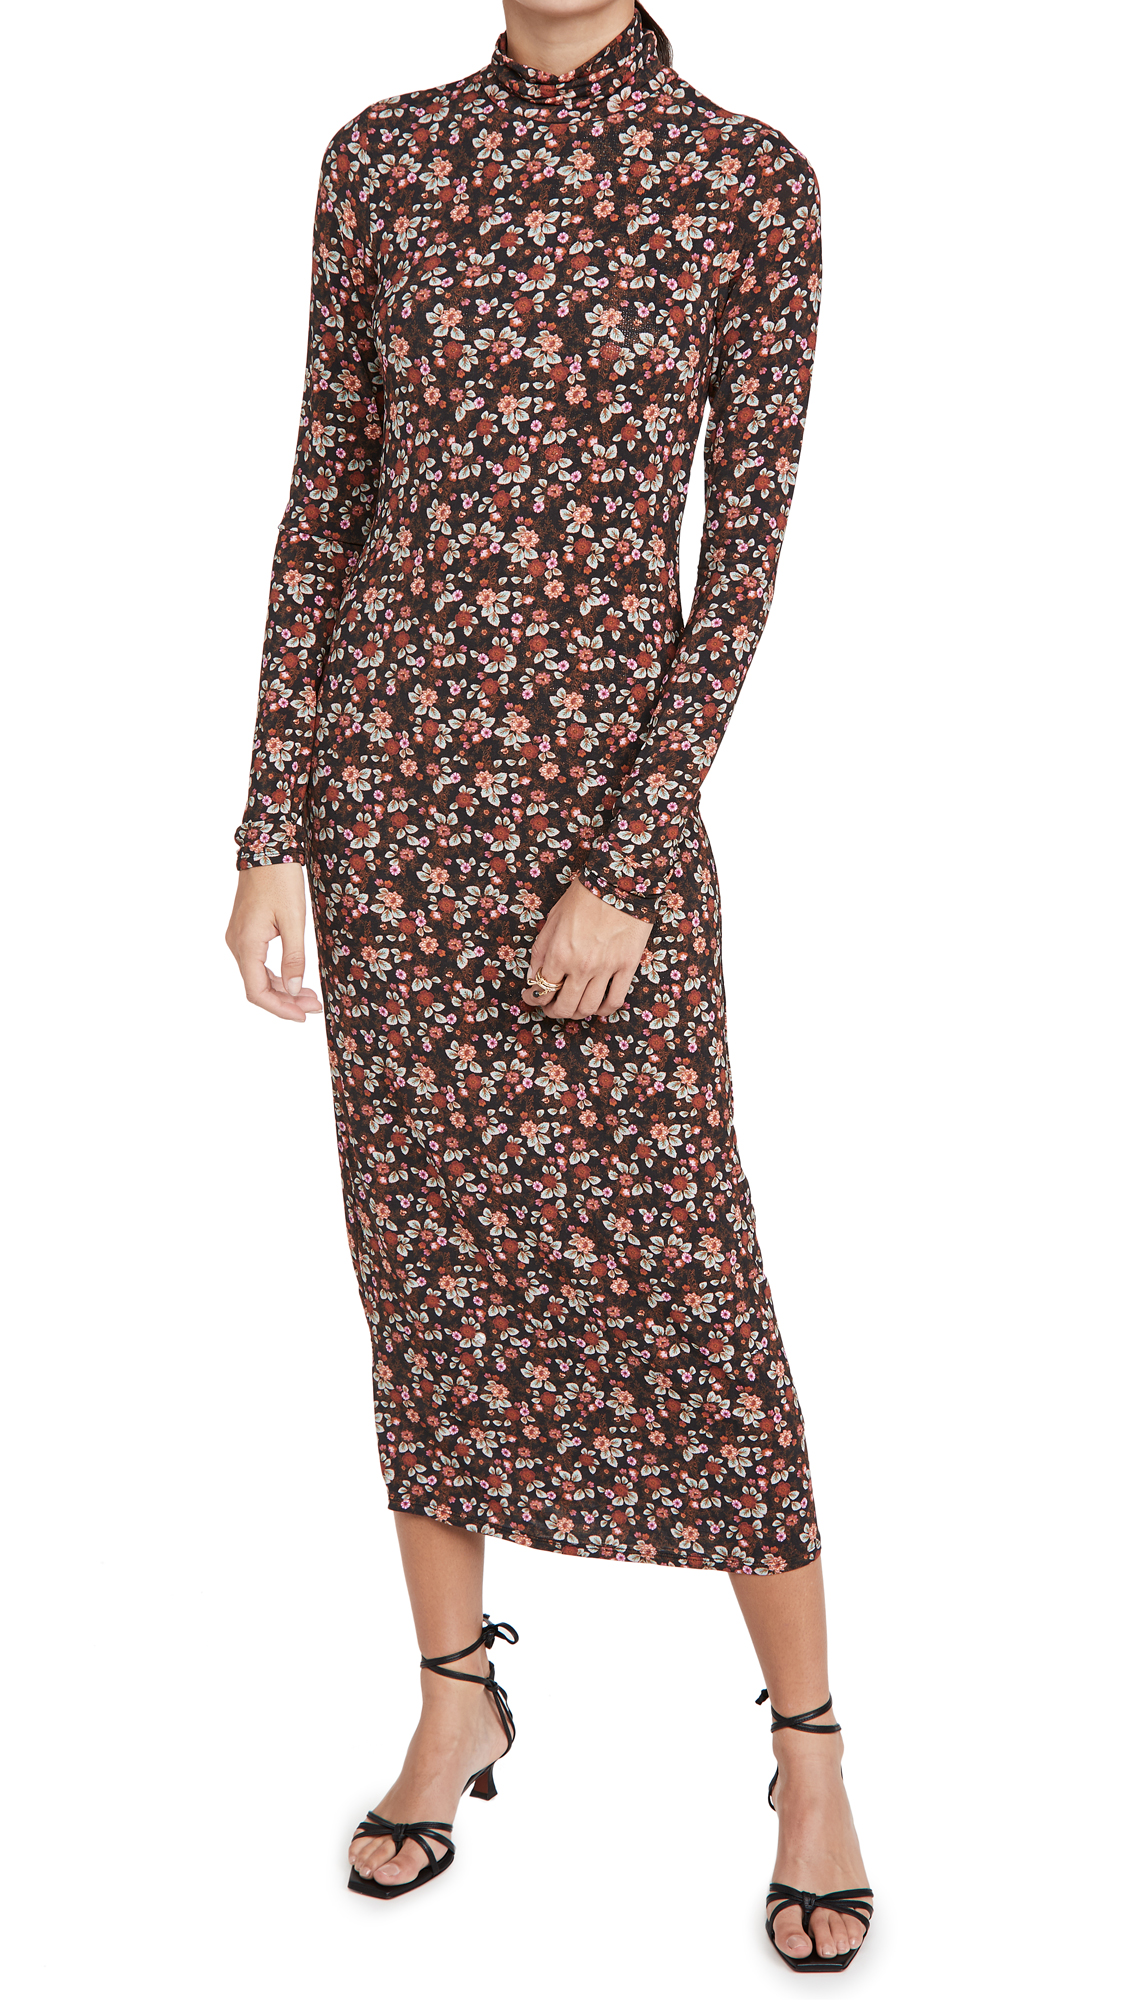 Ramy Brook Printed Heidi Dress